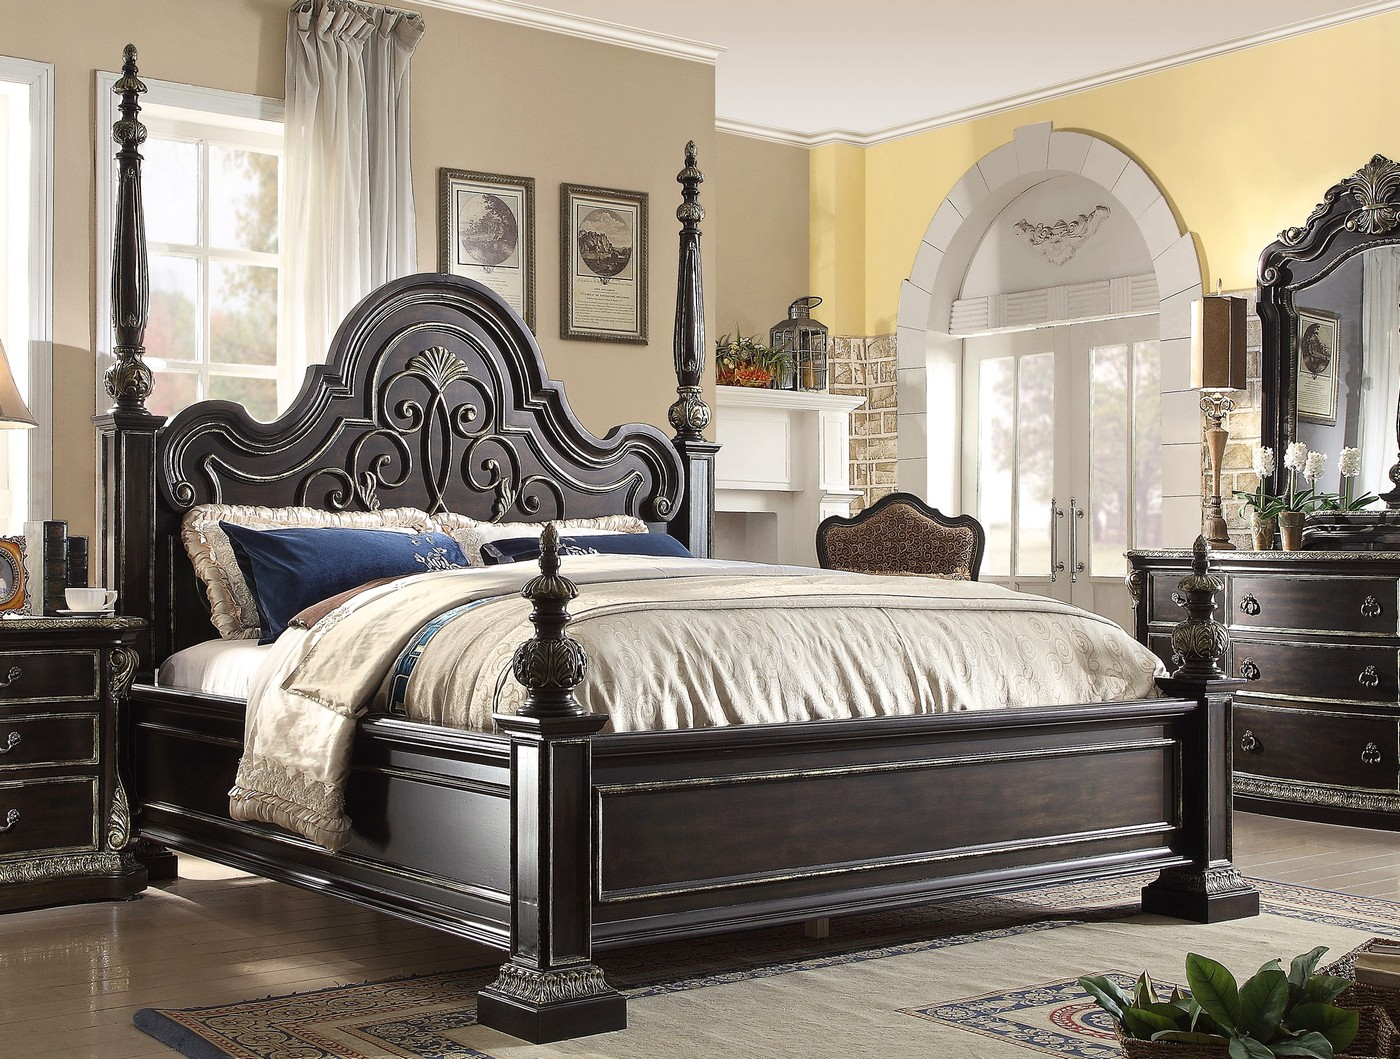 Matteo gothic style 4 pc california king bed set in ebony - California king bedroom furniture ...